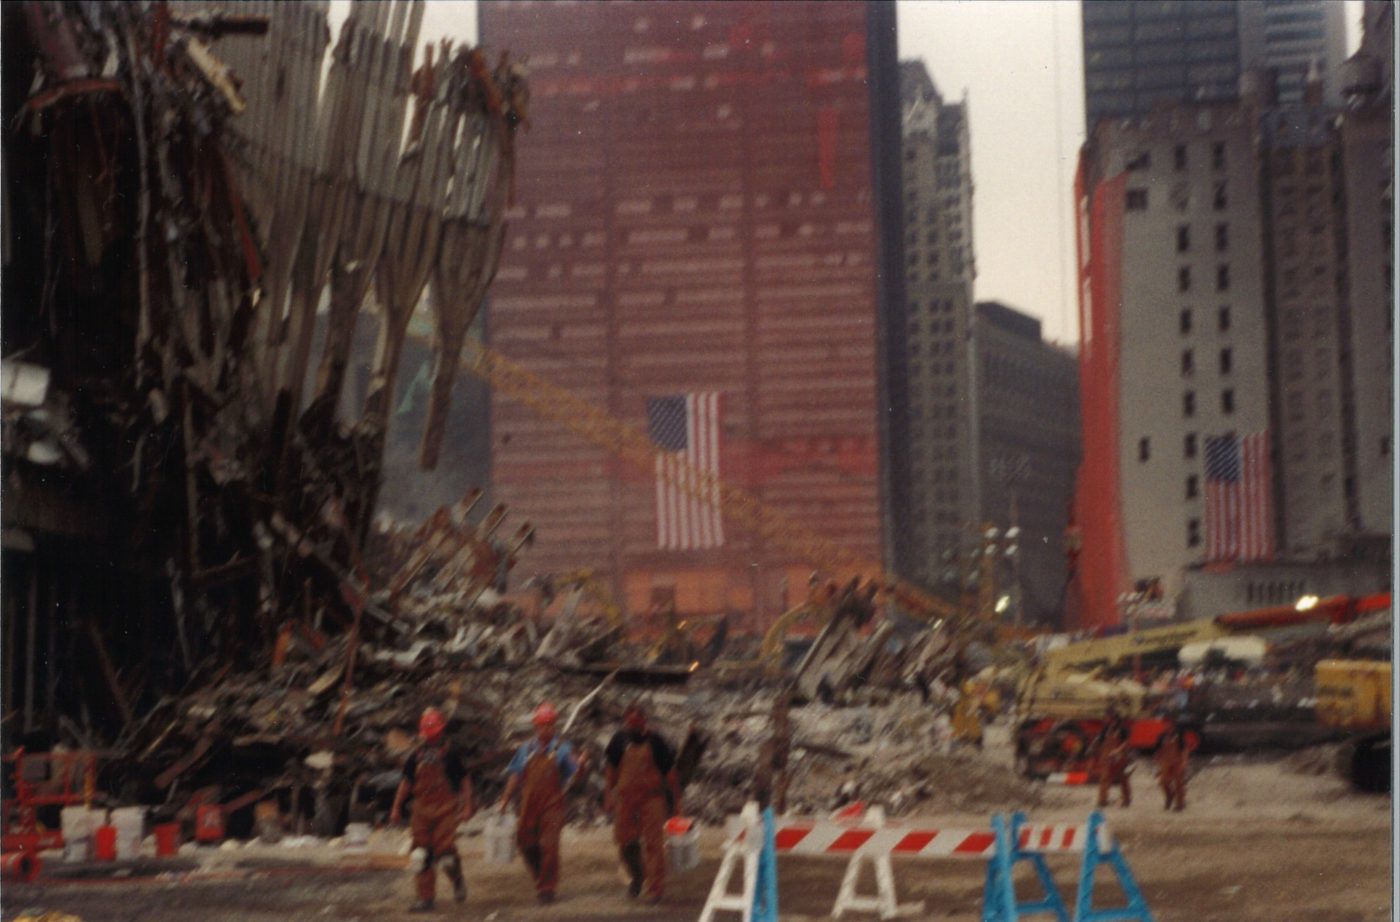 Workers Walking Near Falling Exoskeleton with Sheathed One Liberty Plaza in the Back